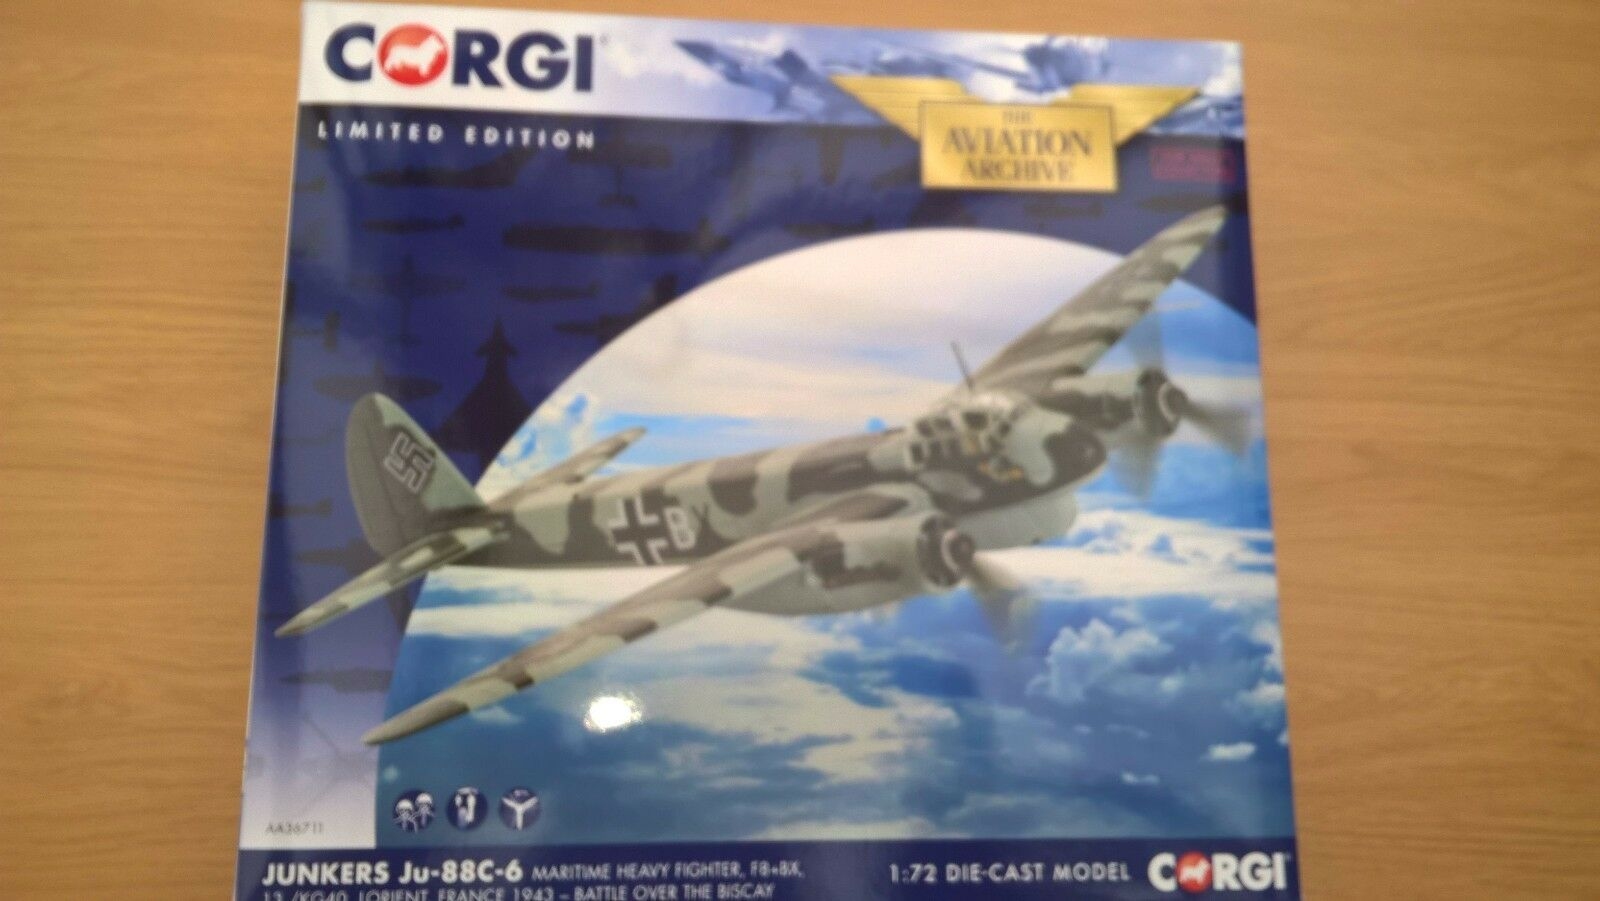 CORGI AVIATION 1 72 JUNKERS JU-88C-6 MARITIME HEAVY  FIGHTER FRANCE 1943 no 0003